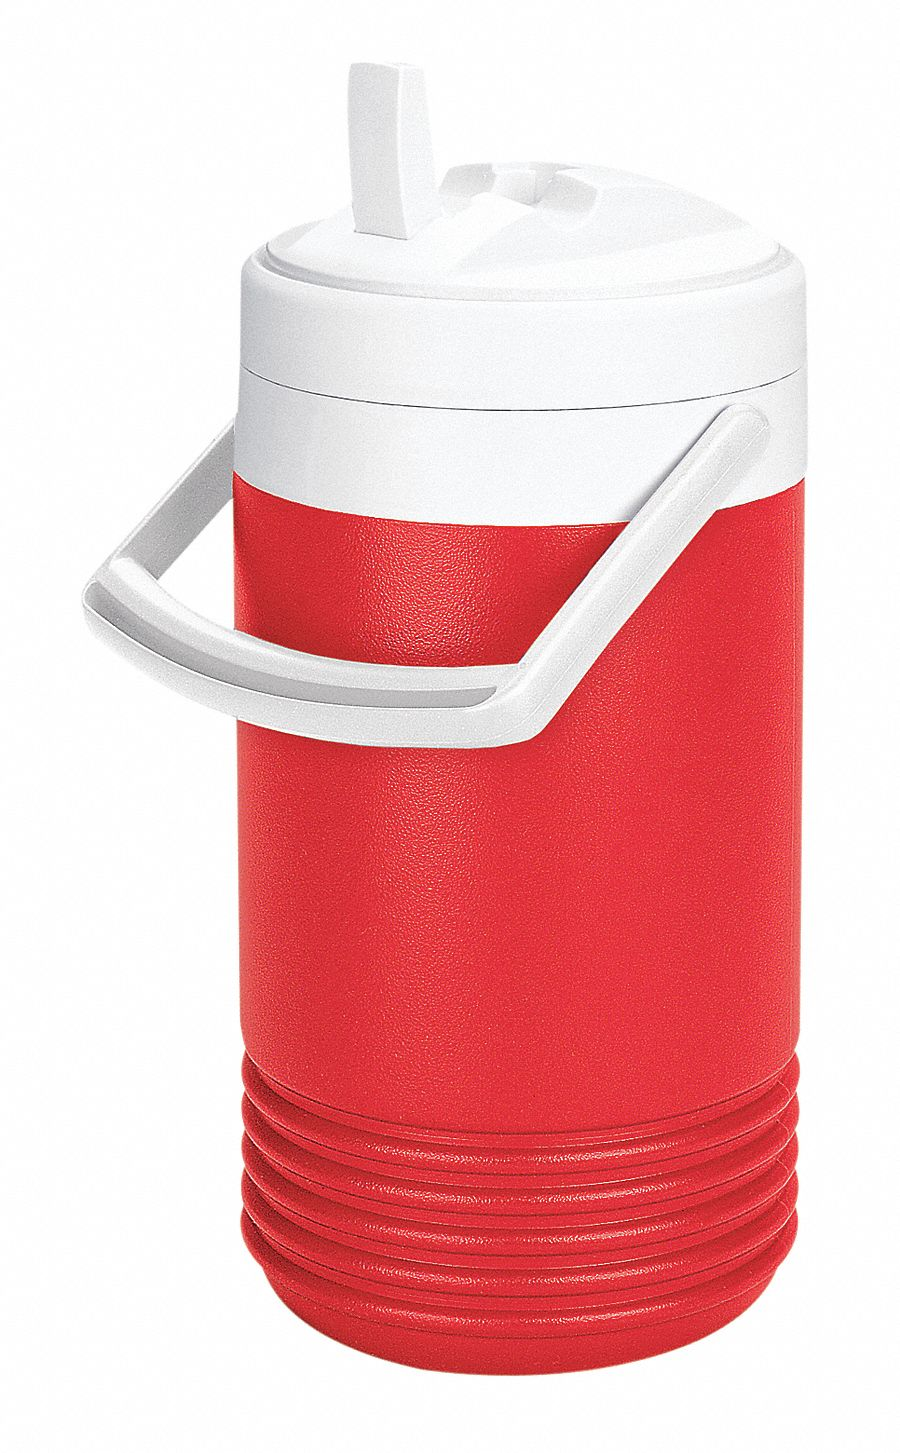 Plastic,  1.0 gal,  Beverage Jug,  Up to 2 days Ice Retention,  Red